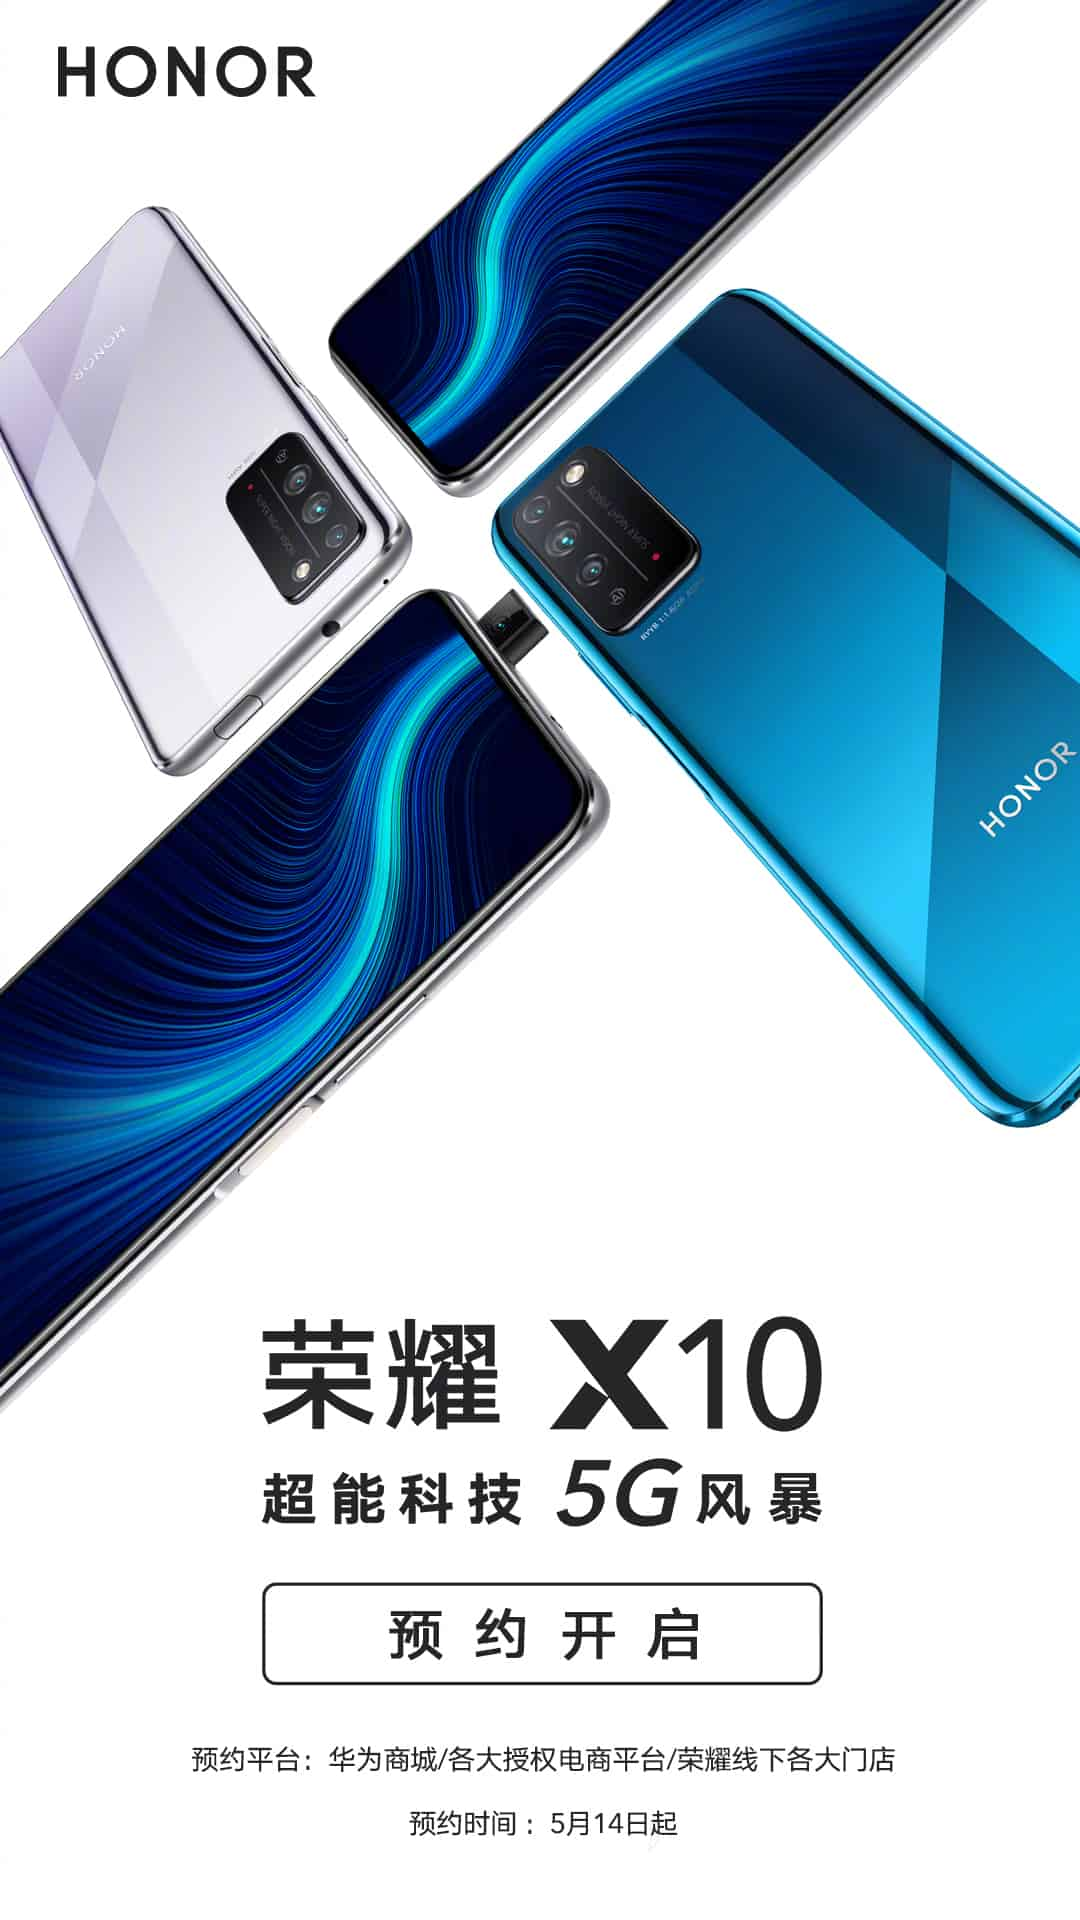 HONOR X10 official prelaunch poster